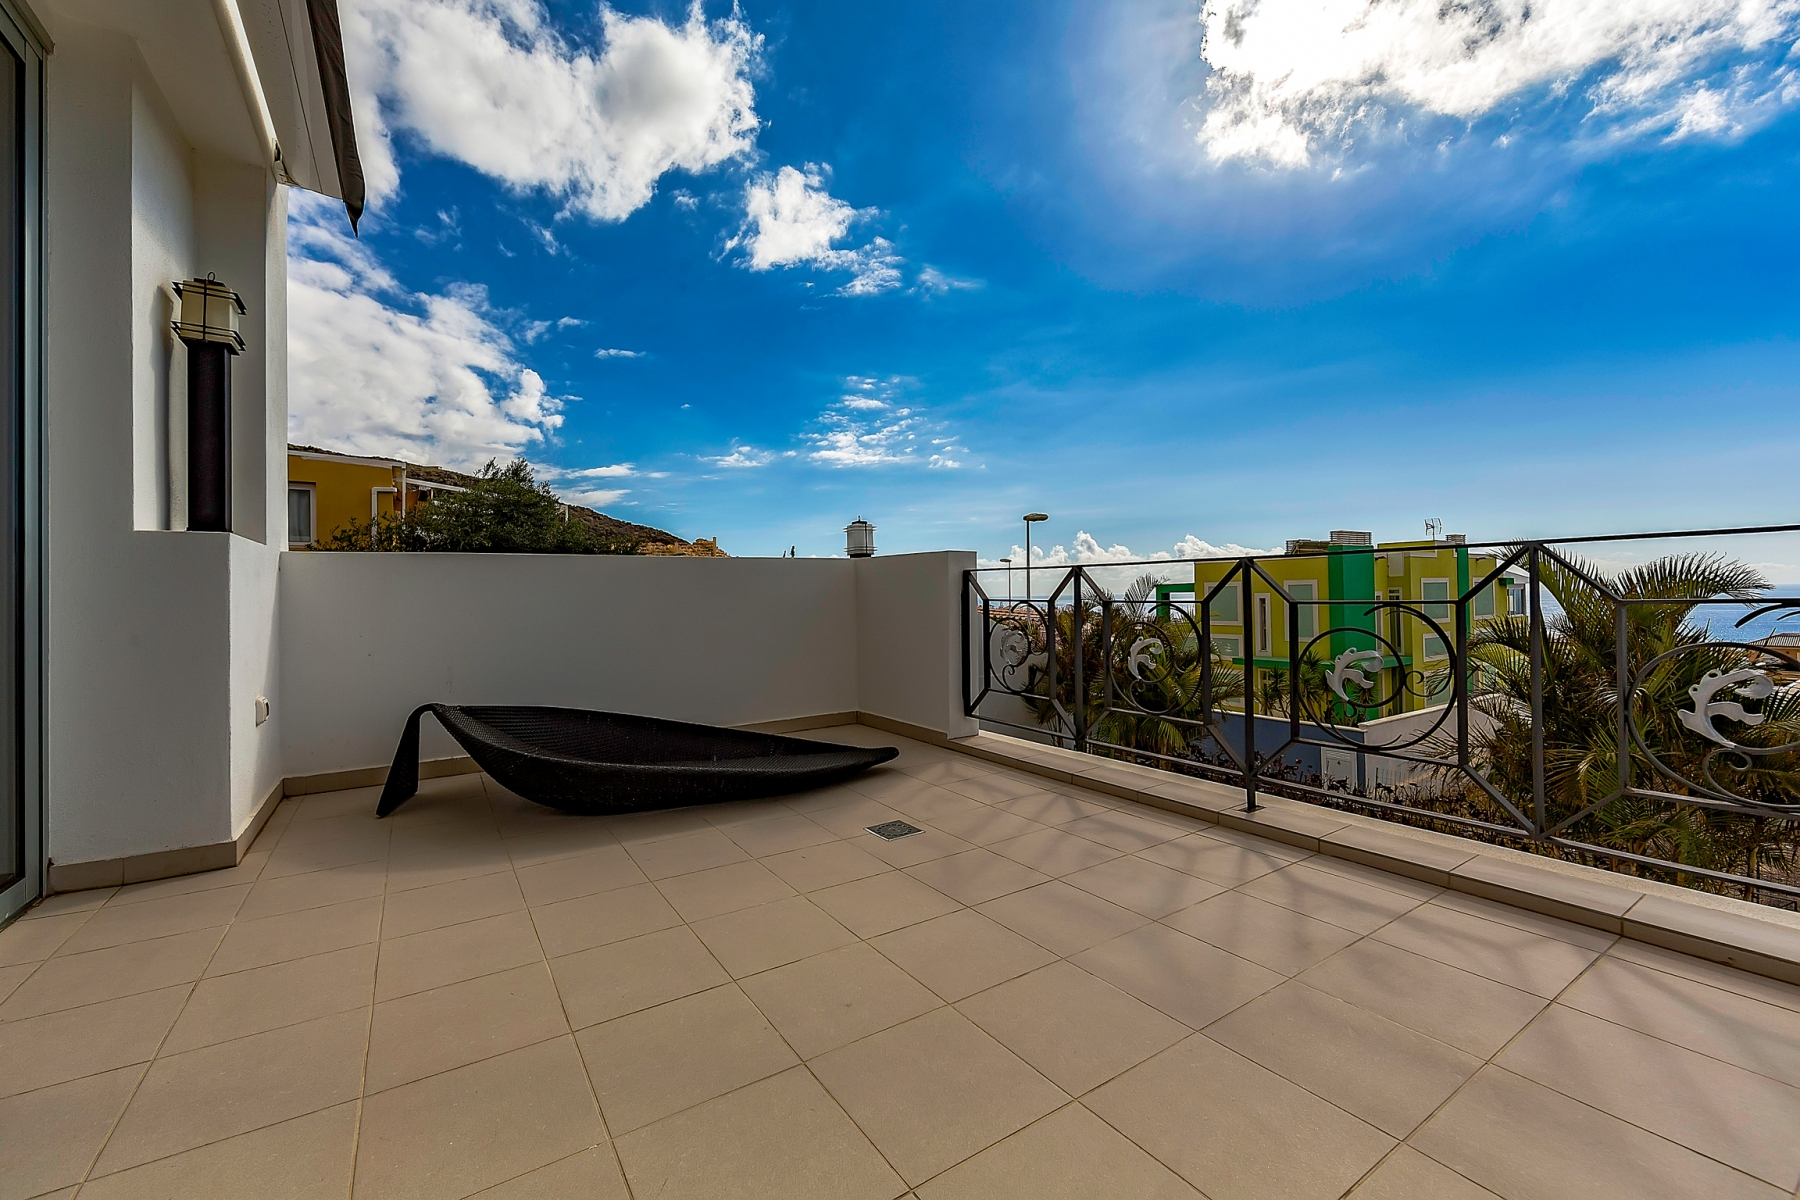 Properties for Sale in Tenerife, Canary Islands, Spain   SylkWayStar Real Estate. Luxury villa in the fashionable area of the south of the island of Tenerife – Madroñal.. Image-22762